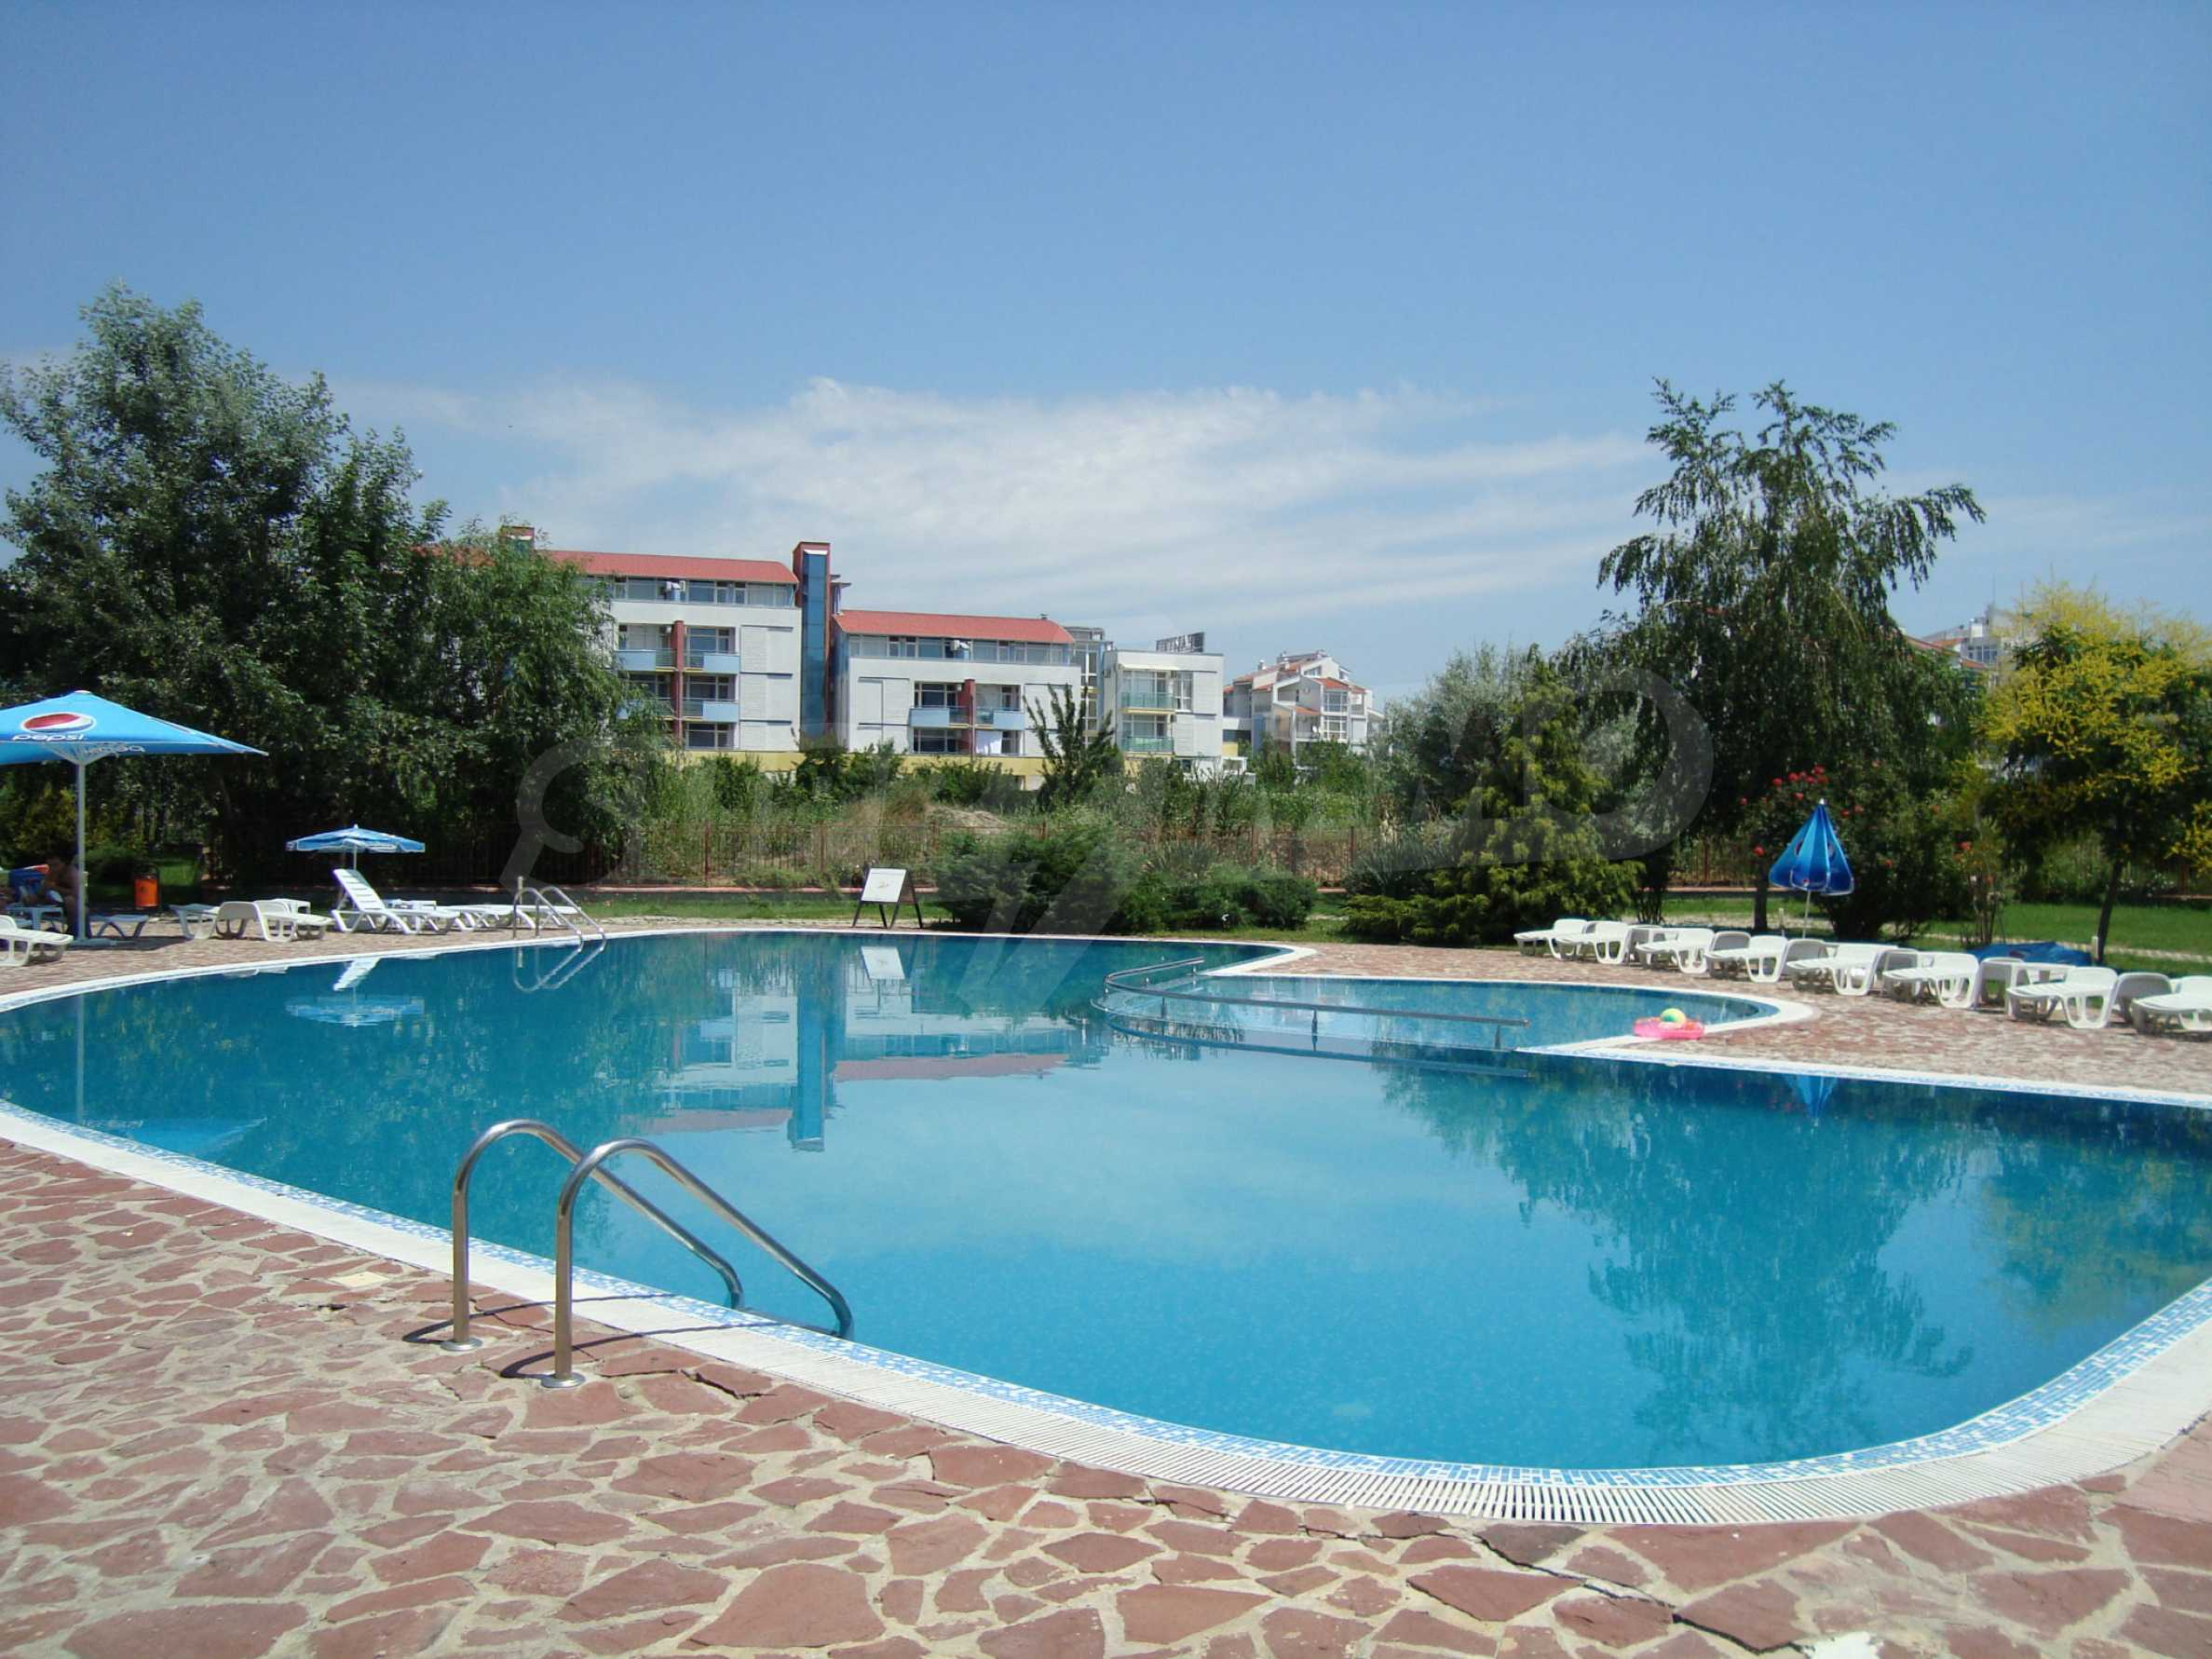 One-bedroom apartment in Prestige City 1 complex in Sunny beach